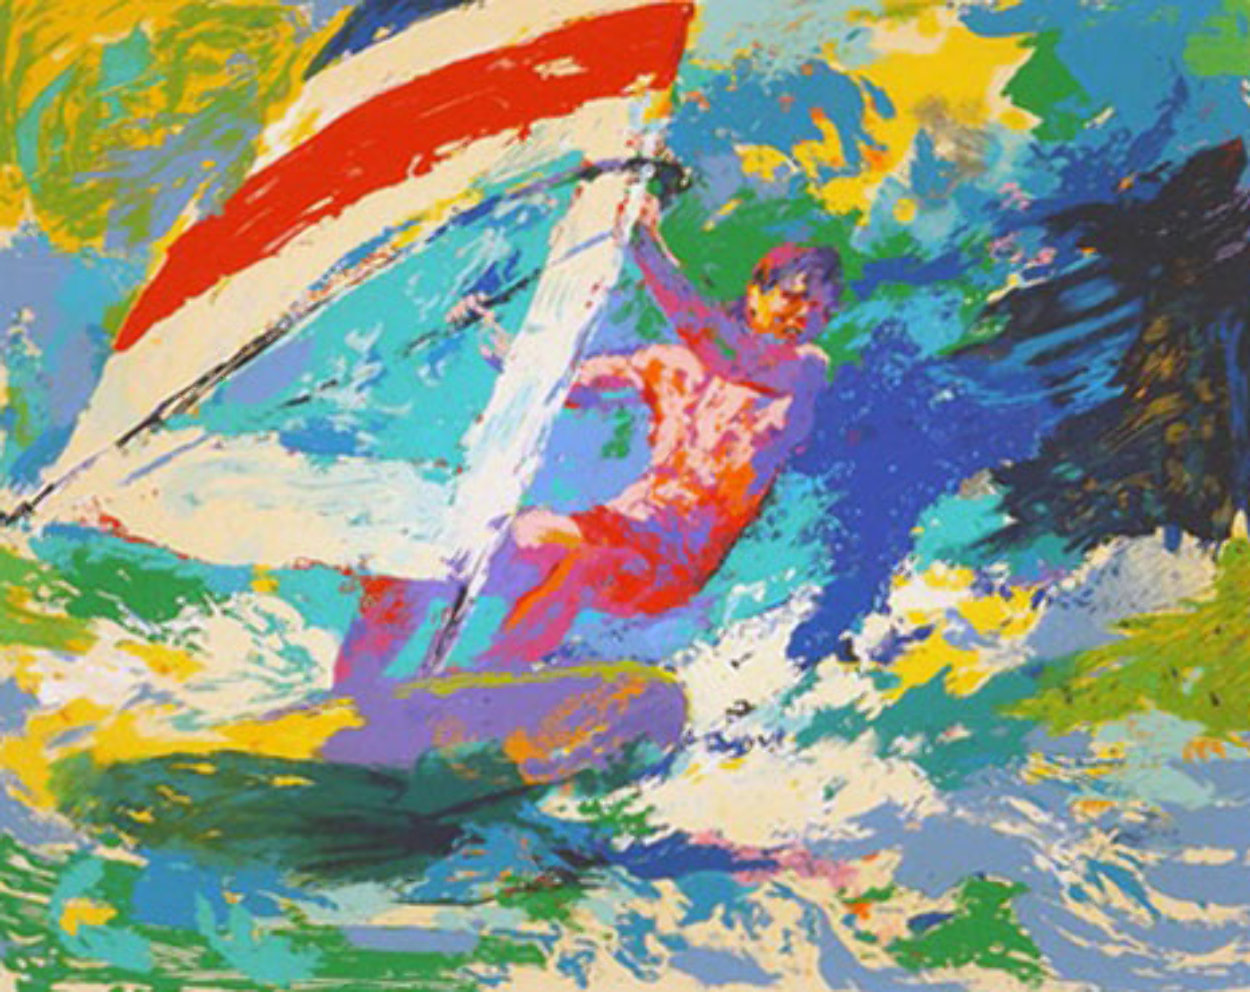 Wind Surfer 1973 Limited Edition Print by LeRoy Neiman